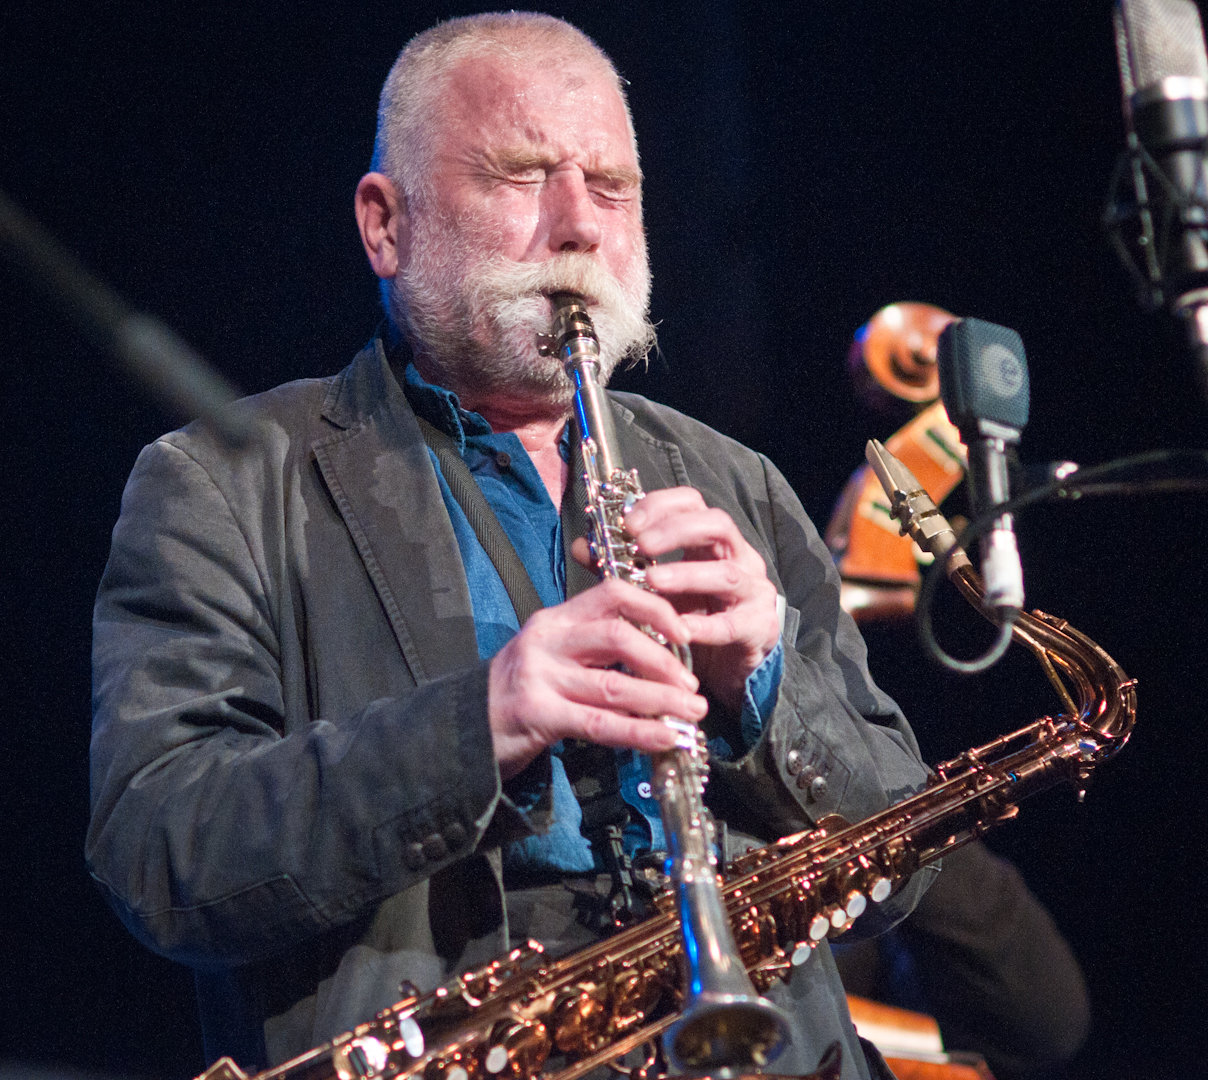 Peter Brotzmann with Quartet at the Vision Festival 2011